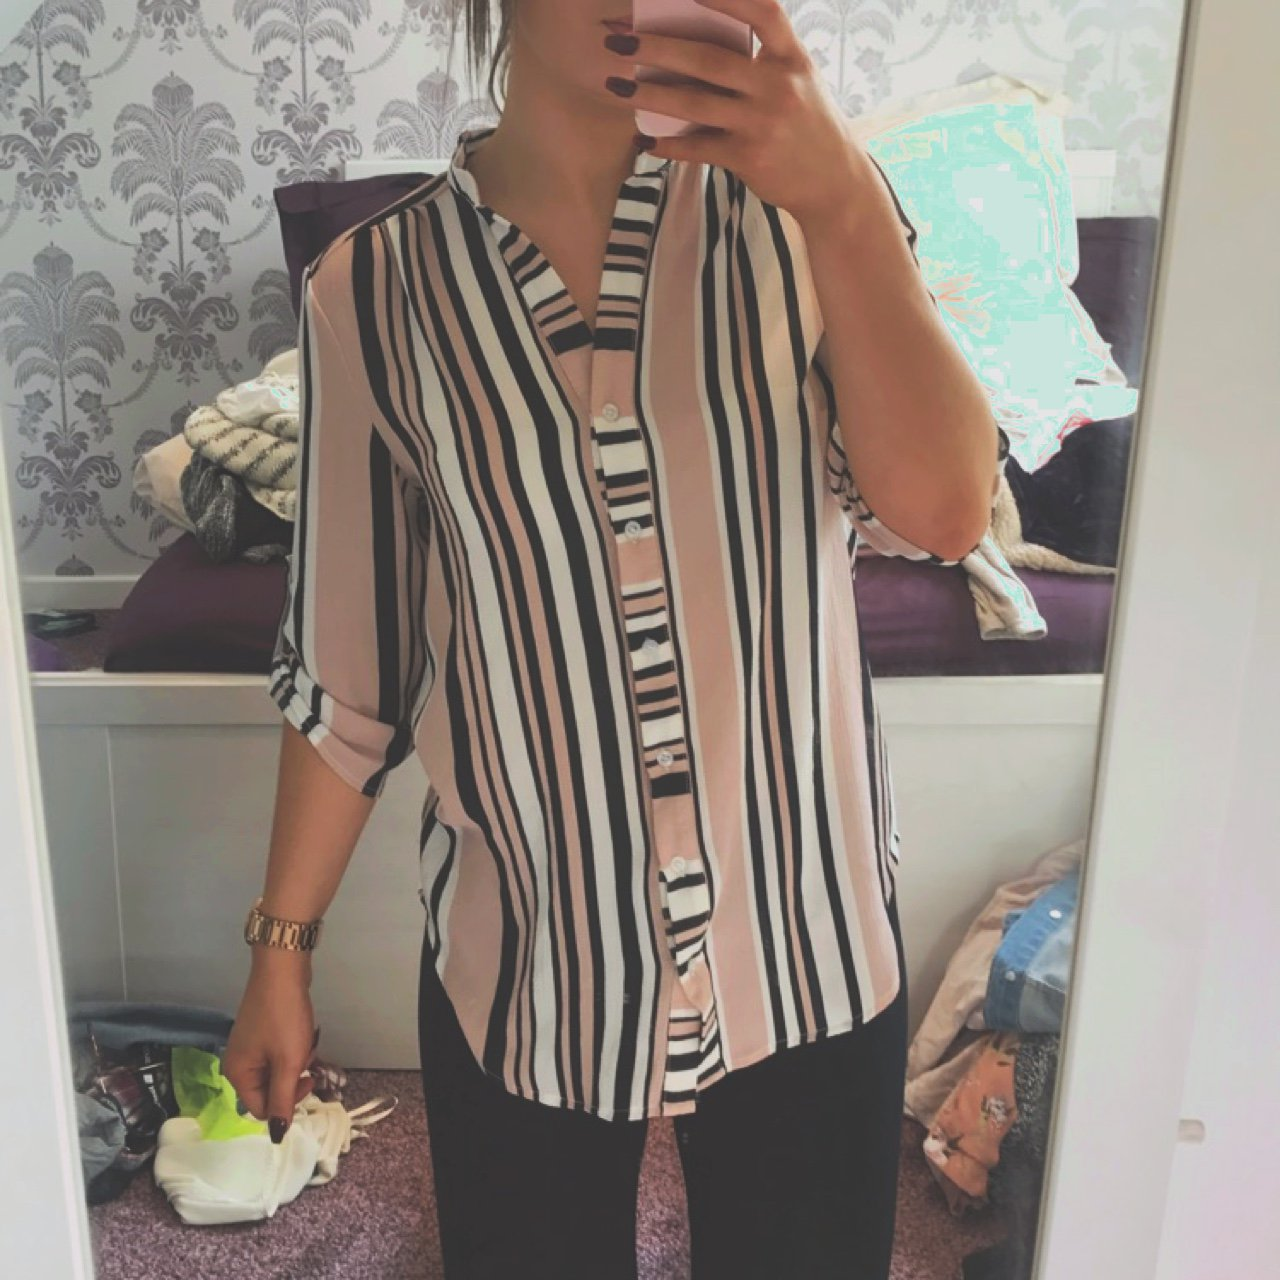 2ed0f05a9e4528 New Look pink striped blouse/shirt, size 6 - Depop